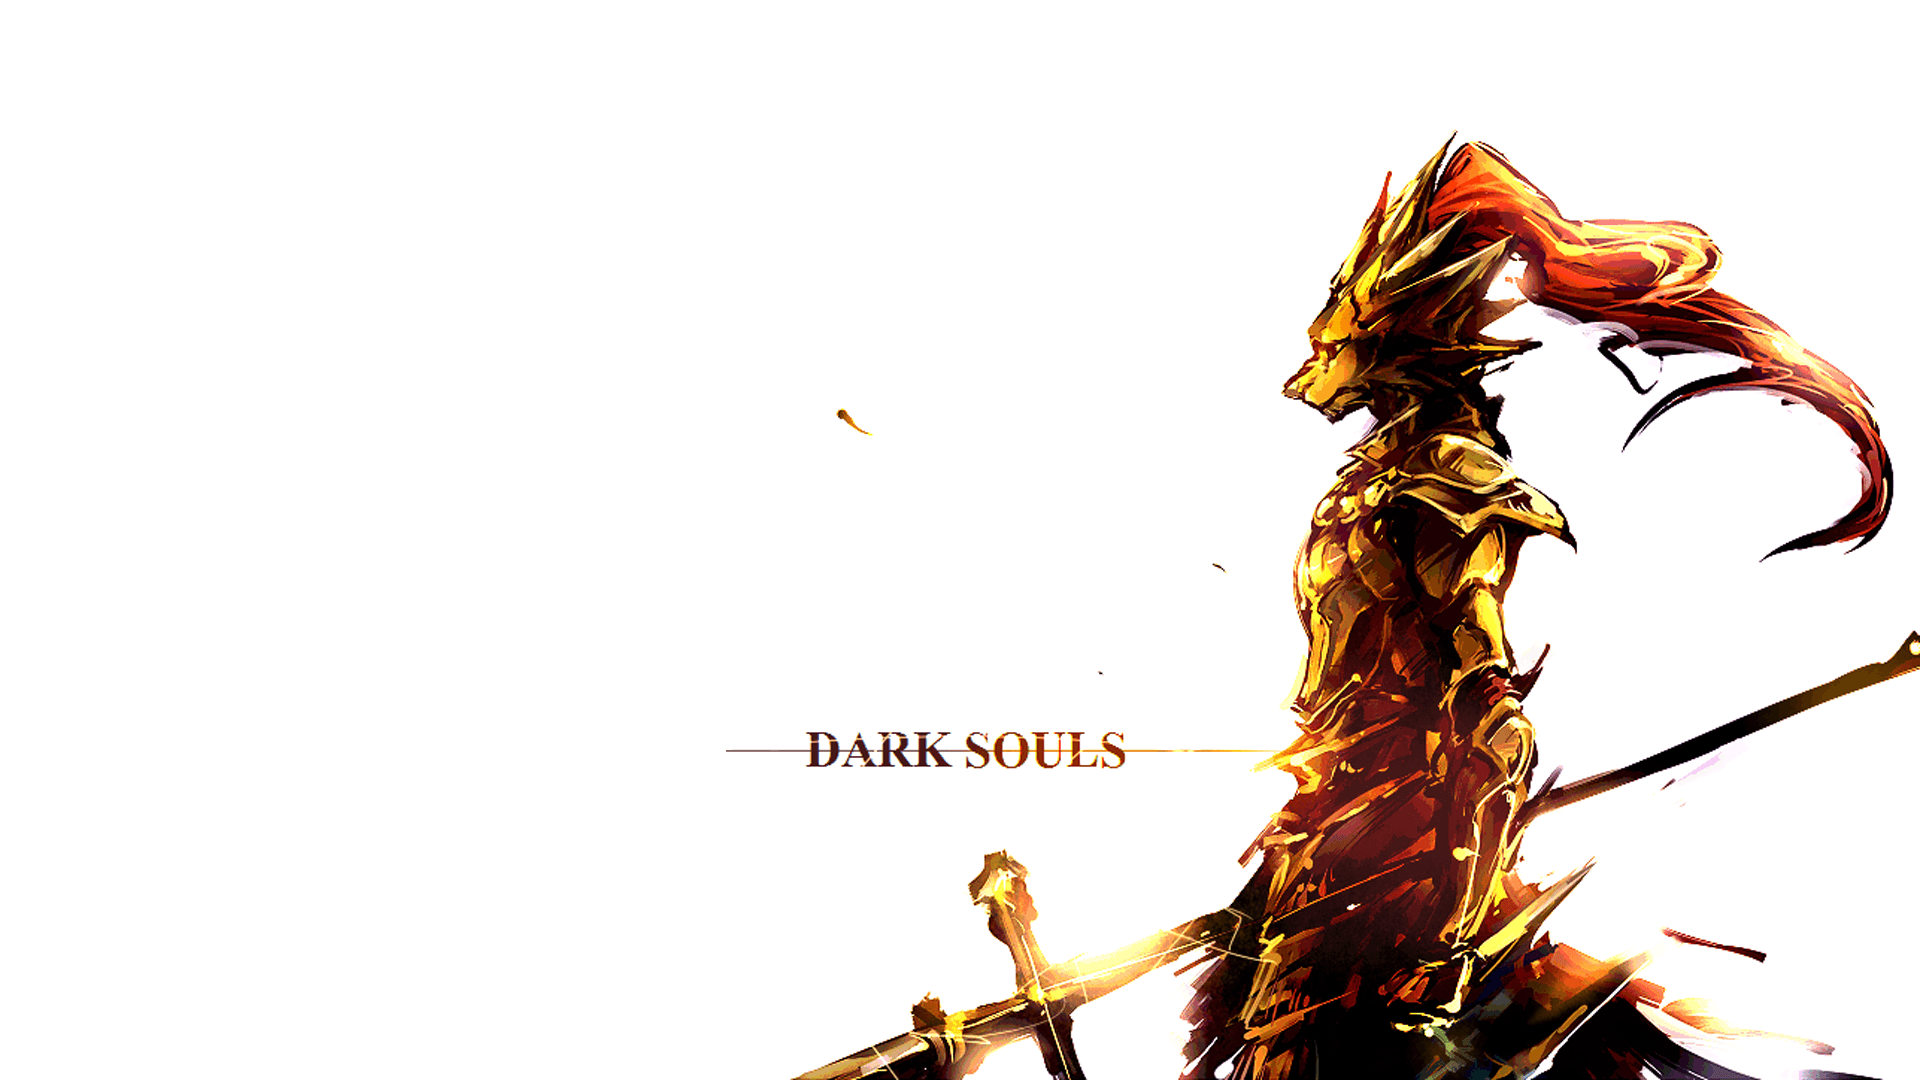 dark souls lodran wallpaper - photo #19